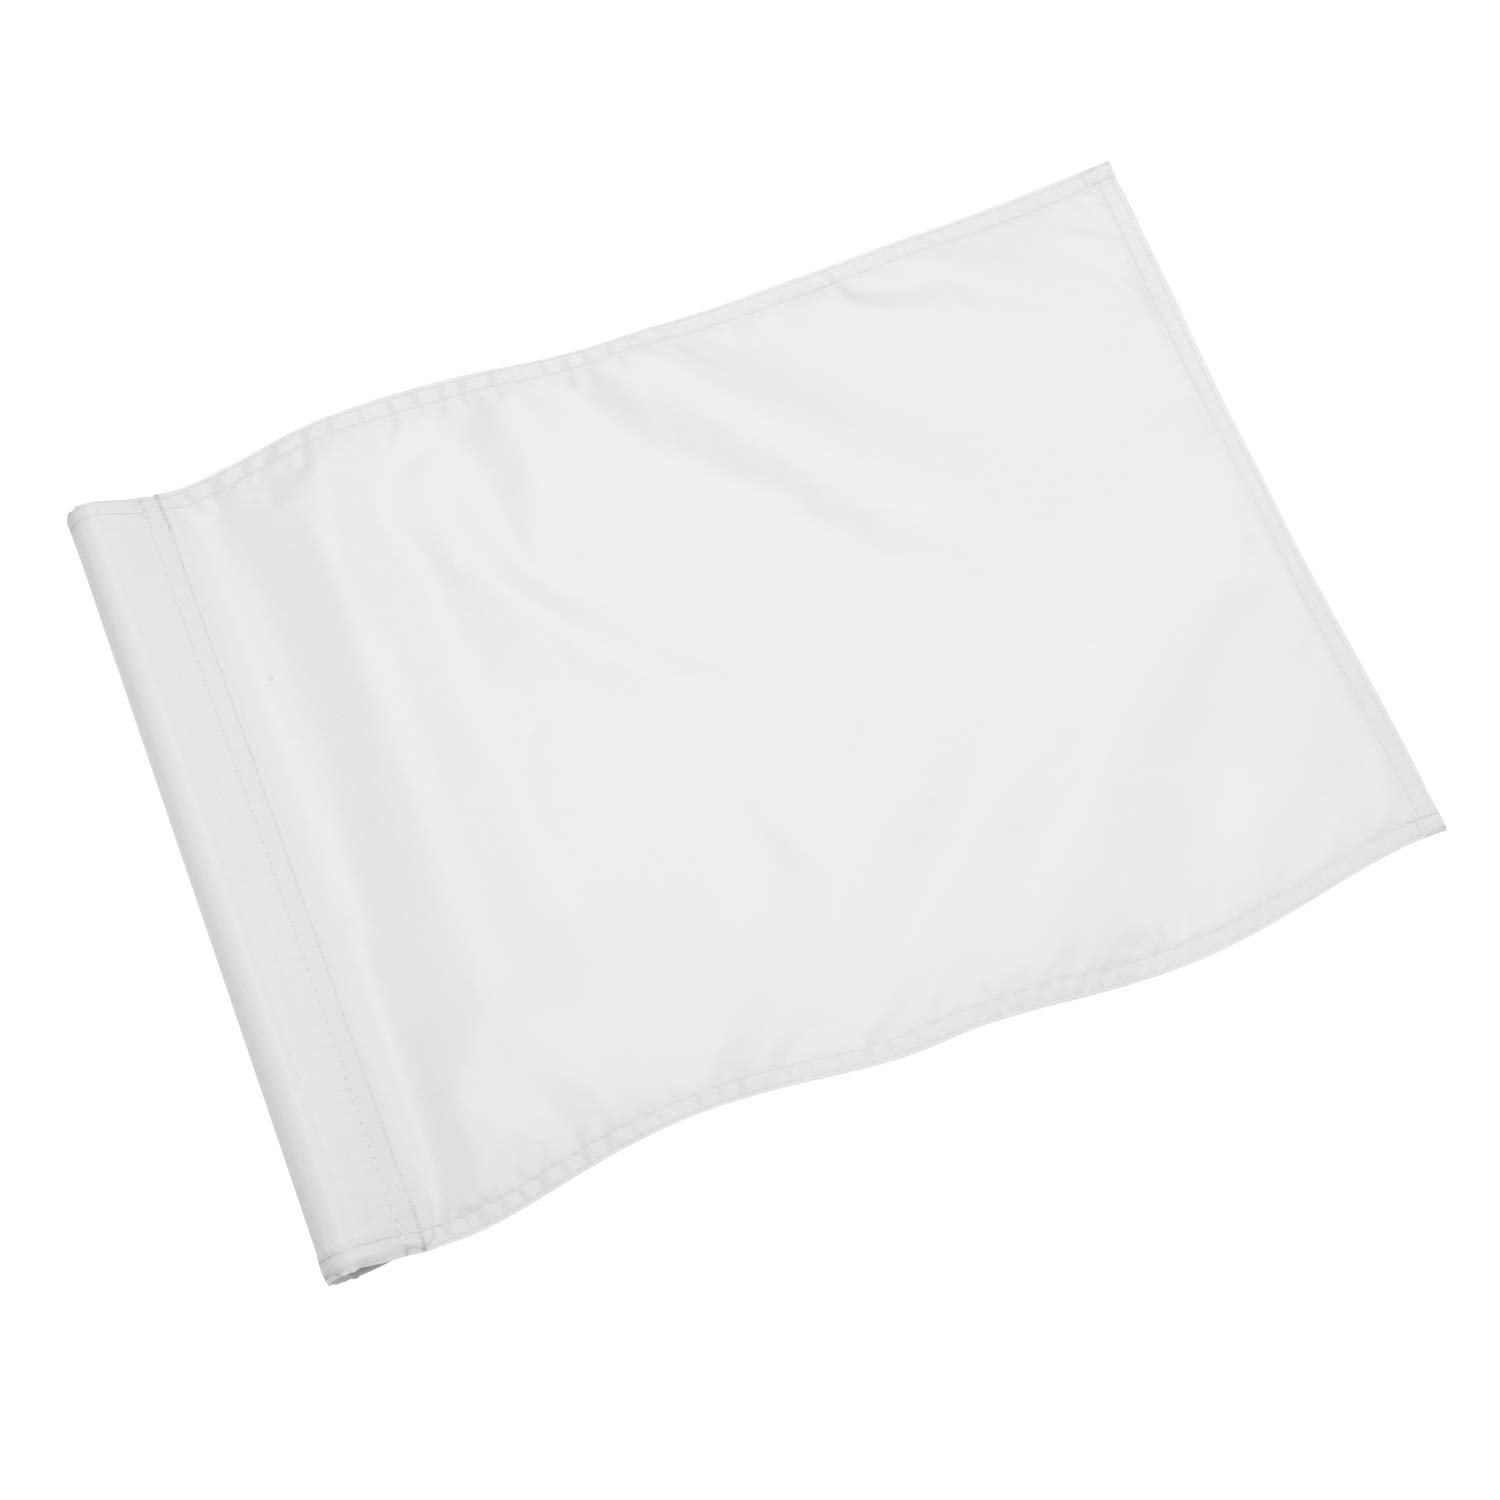 KINGTOP Solid Golf Flag with Plastic Insert, Putting Green Flags for Yard, Indoor/Outdoor, Garden Pin Flags, 420D Premium Nylon Flag, 13'' L x 20'' H, White by KINGTOP